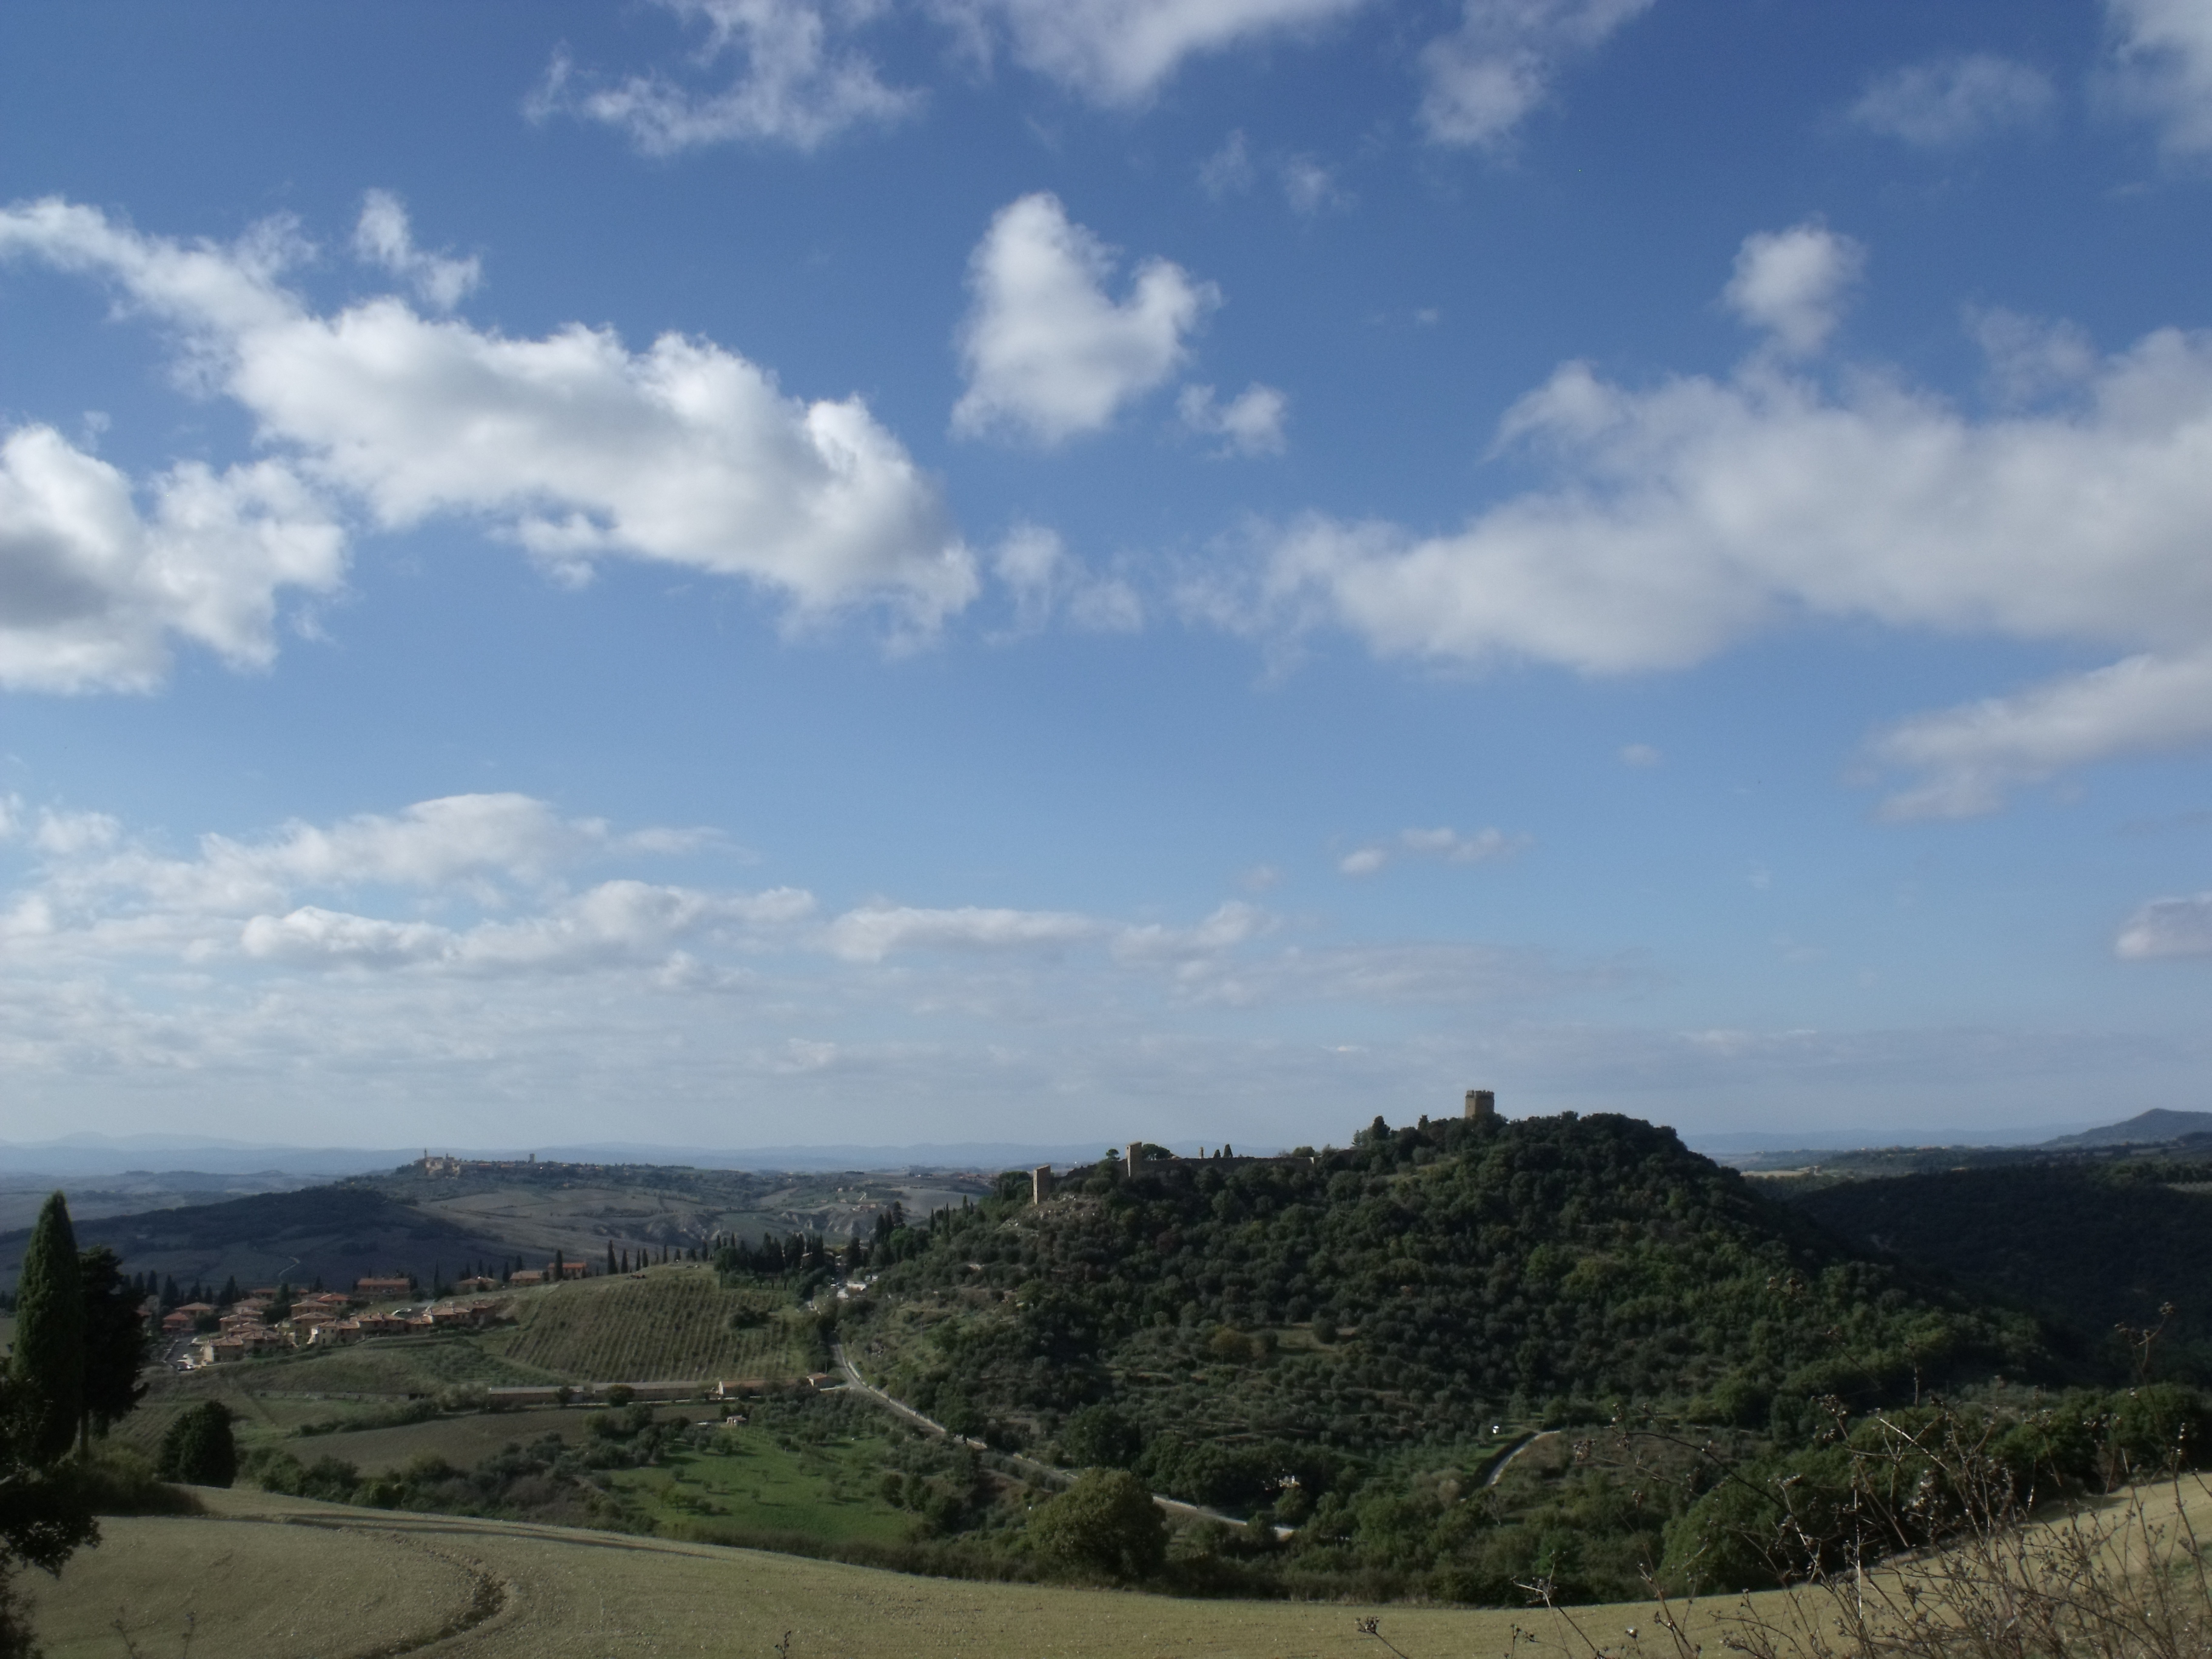 Panorama of Monticchiello (hamlet of Pienza) from the south-east (in the background left side Pienza), Val d'Orcia